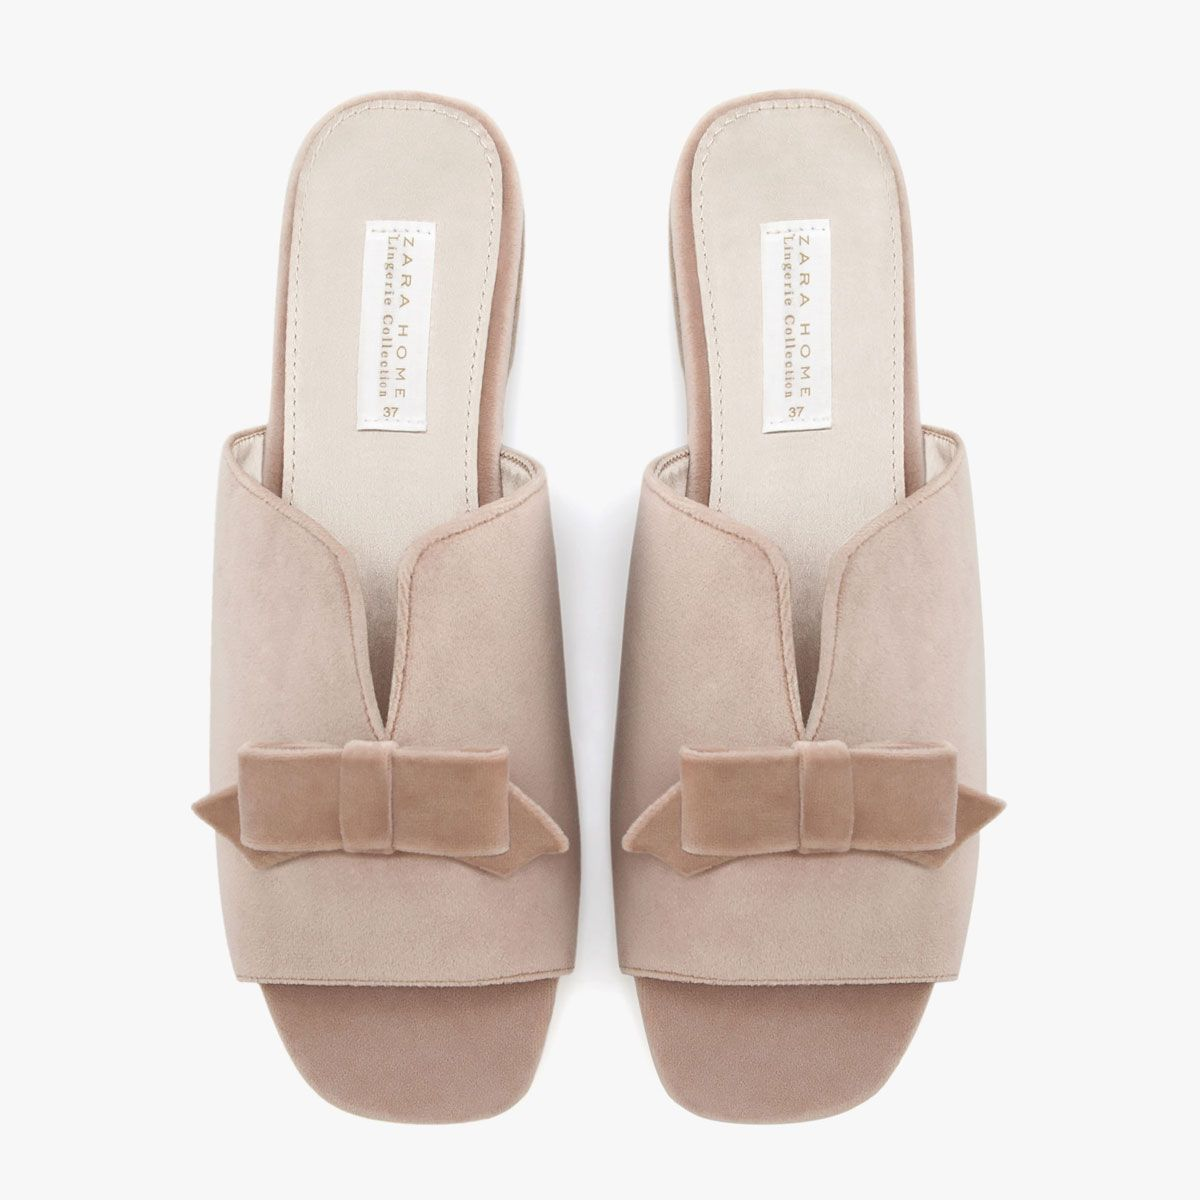 ee444780e3 Image 3 of the product SLIPPERS WITH BOW ON INSTEP | slippers ...